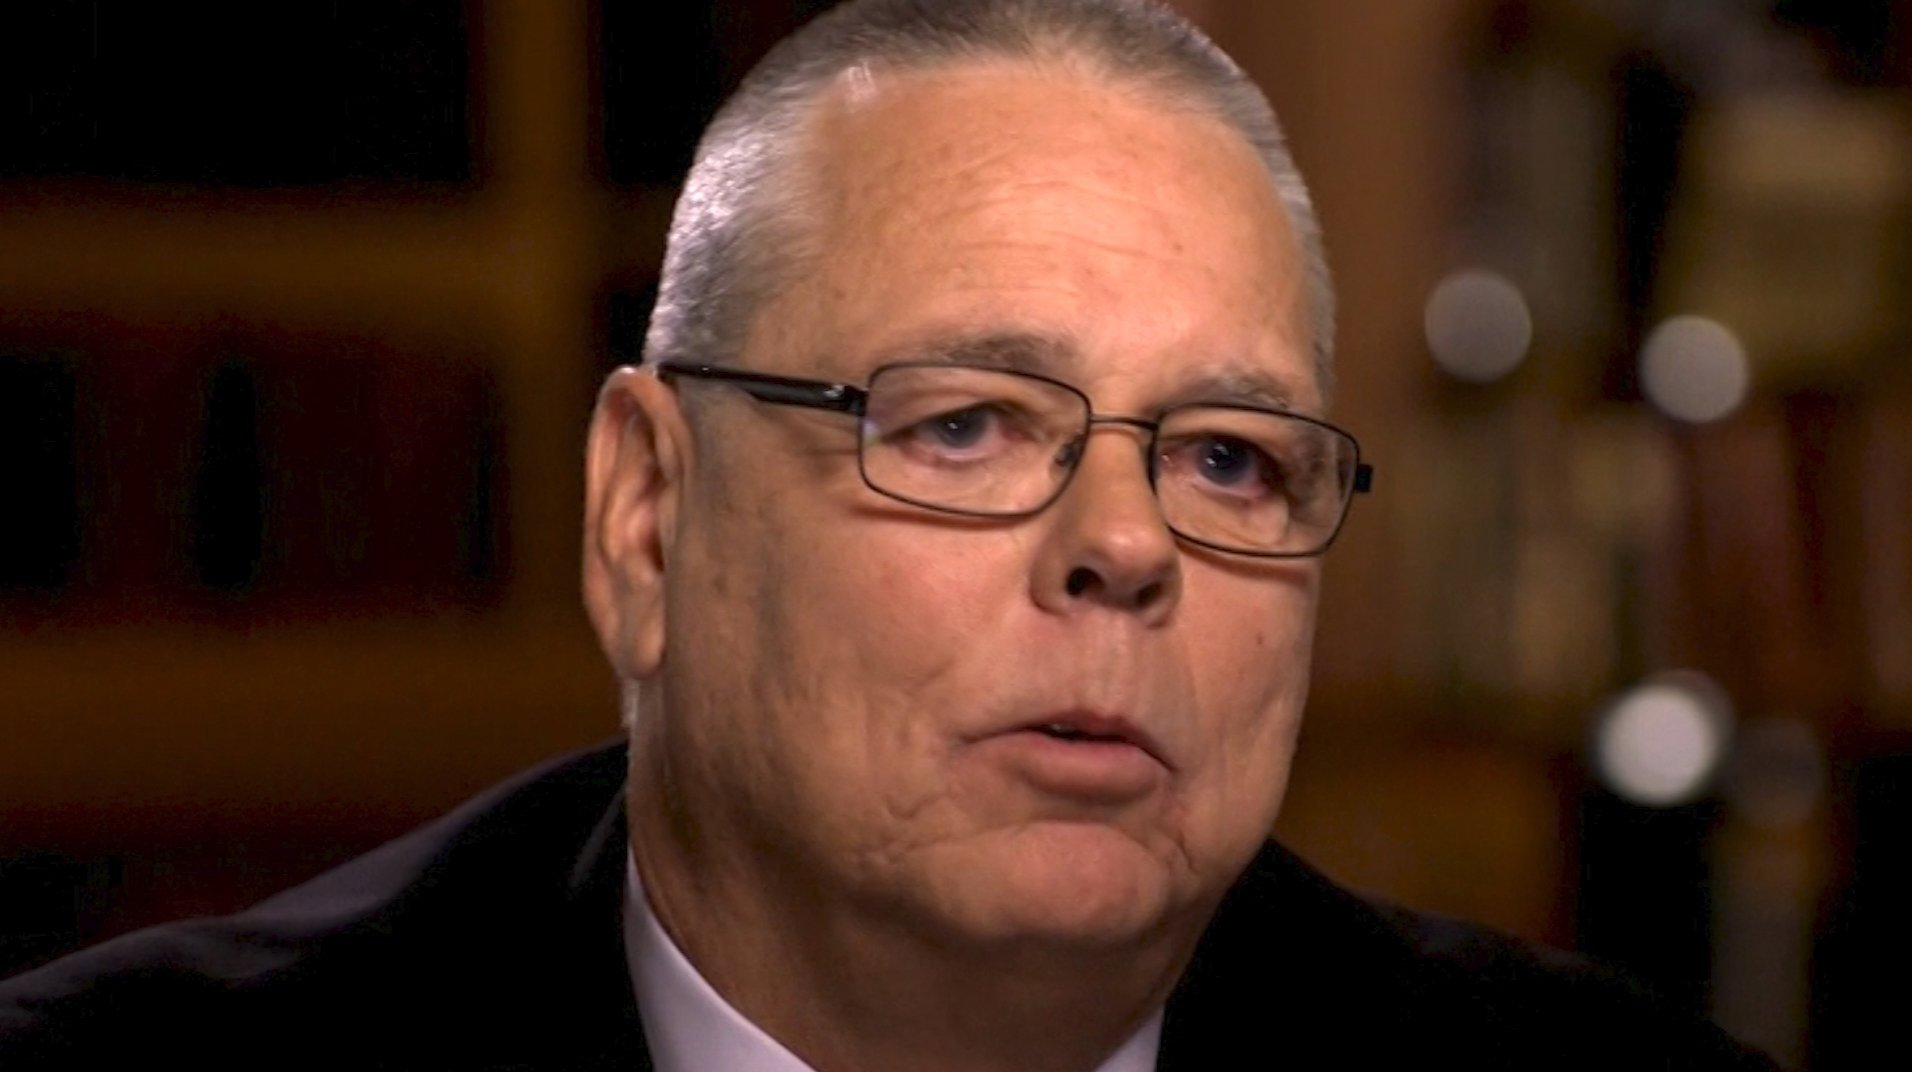 School Resource Officer Criticized For His Response During Parkland Shooting Faces Felony Charges thumbnail